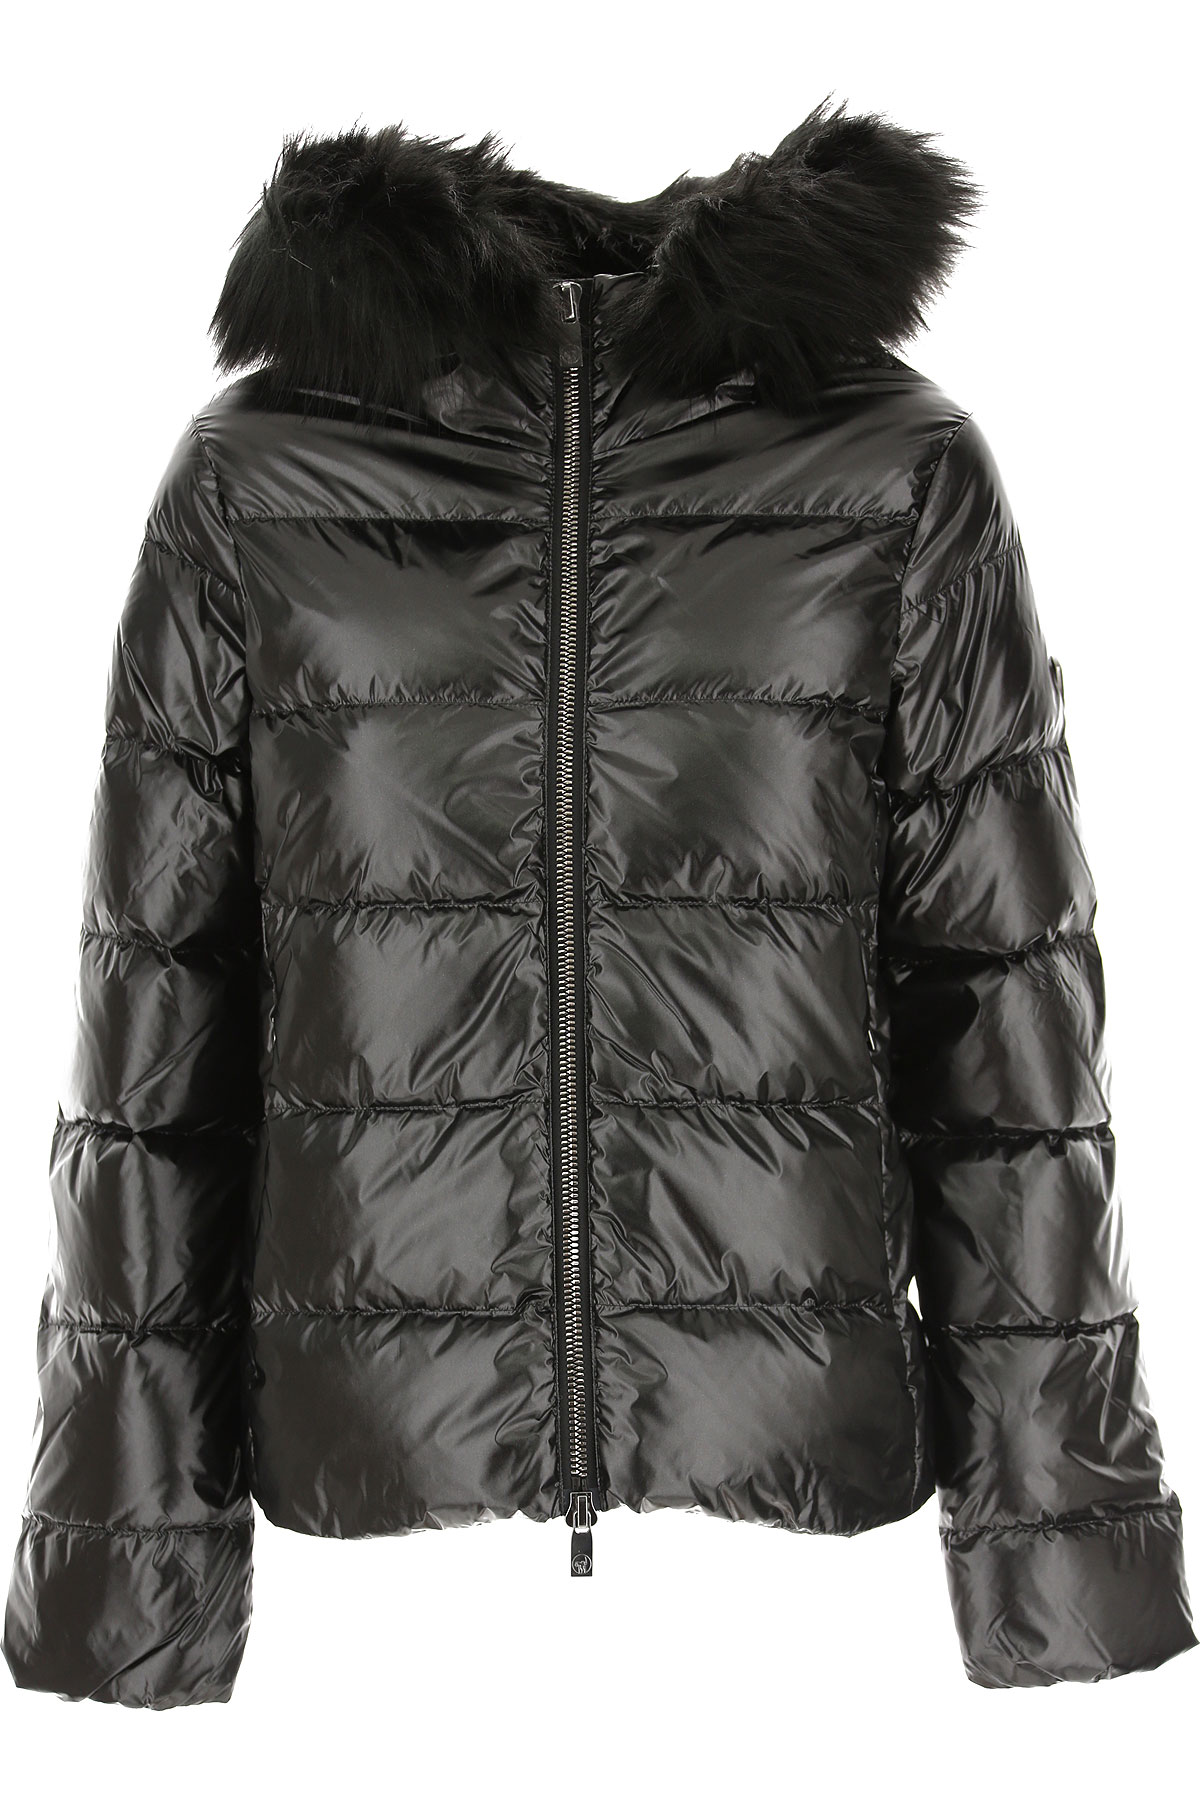 Ciesse Piumini Down Jacket for Women, Puffer Ski Jacket On Sale, Anthracite Grey, Down, 2019, 4 6